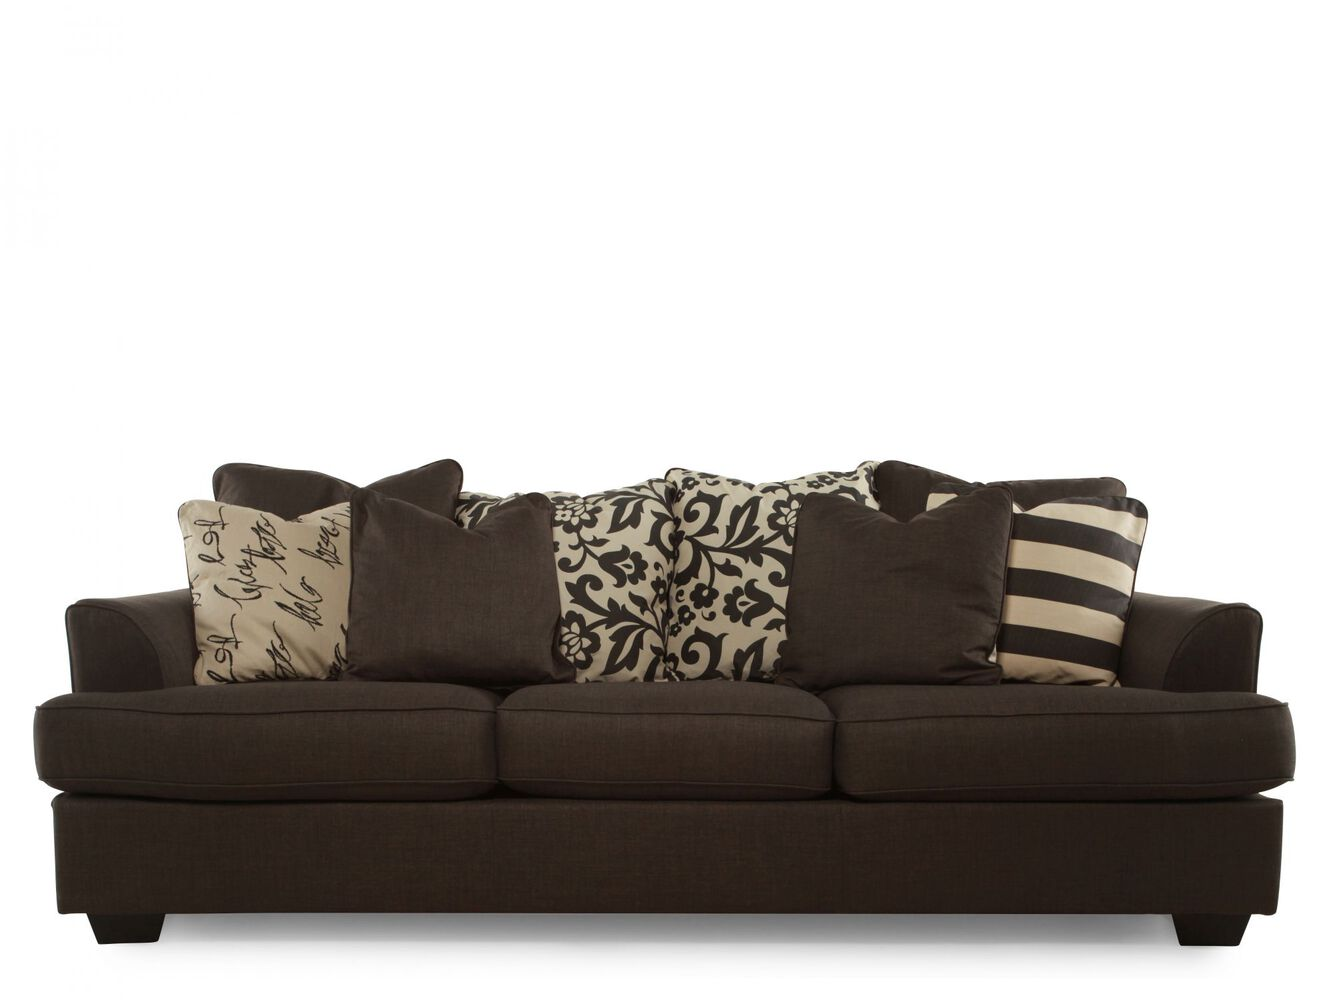 Low profile casual 96 sofa in charcoal mathis brothers for Casual couch